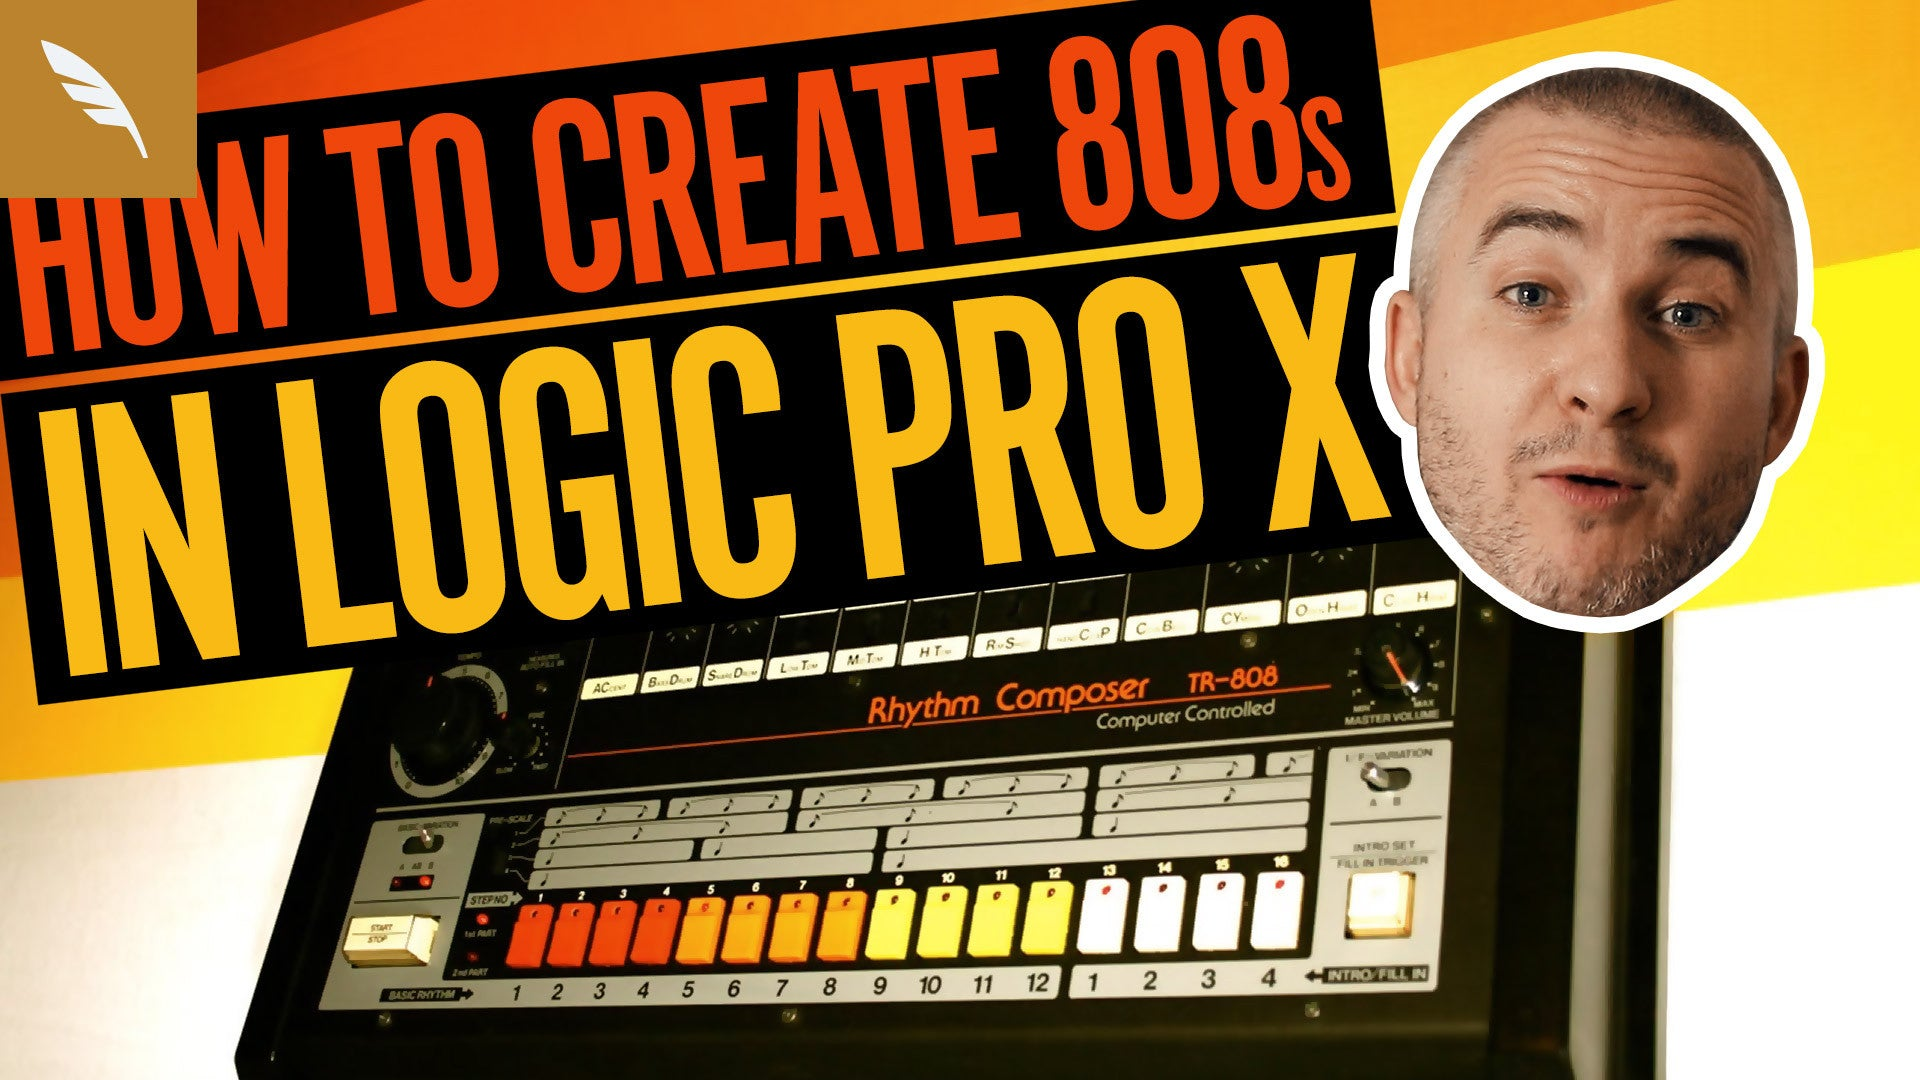 How To Create 808s In Logic Pro X